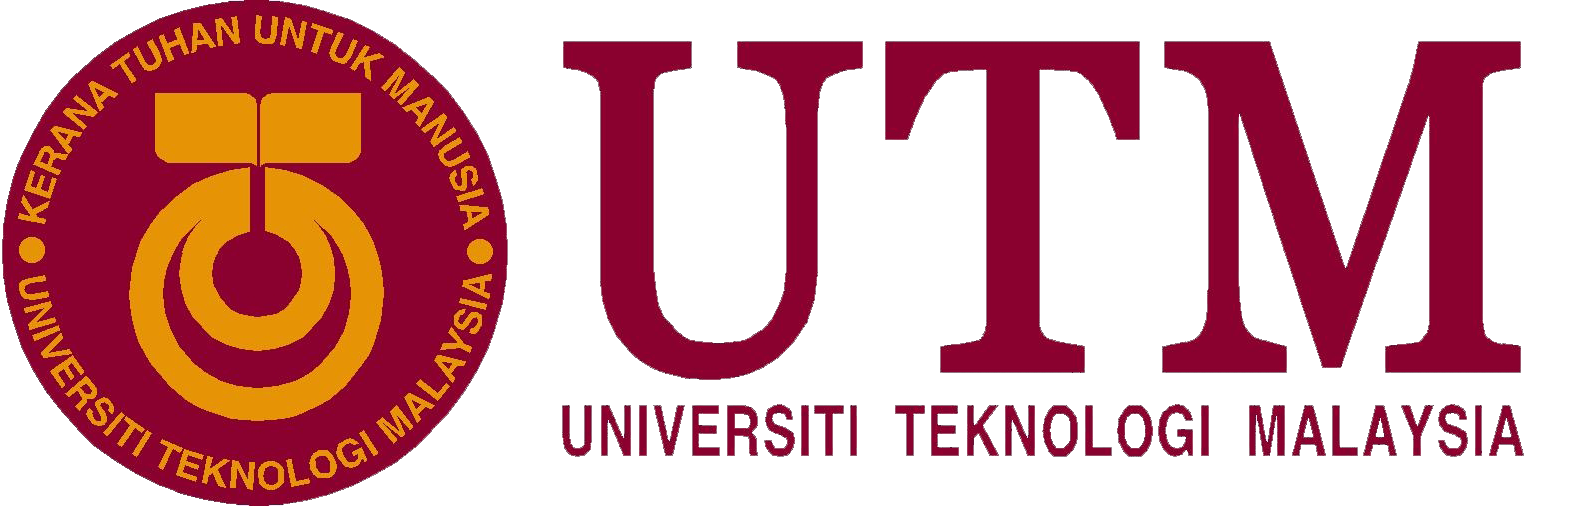 Vacancy at universiti teknologi malaysia (utm)